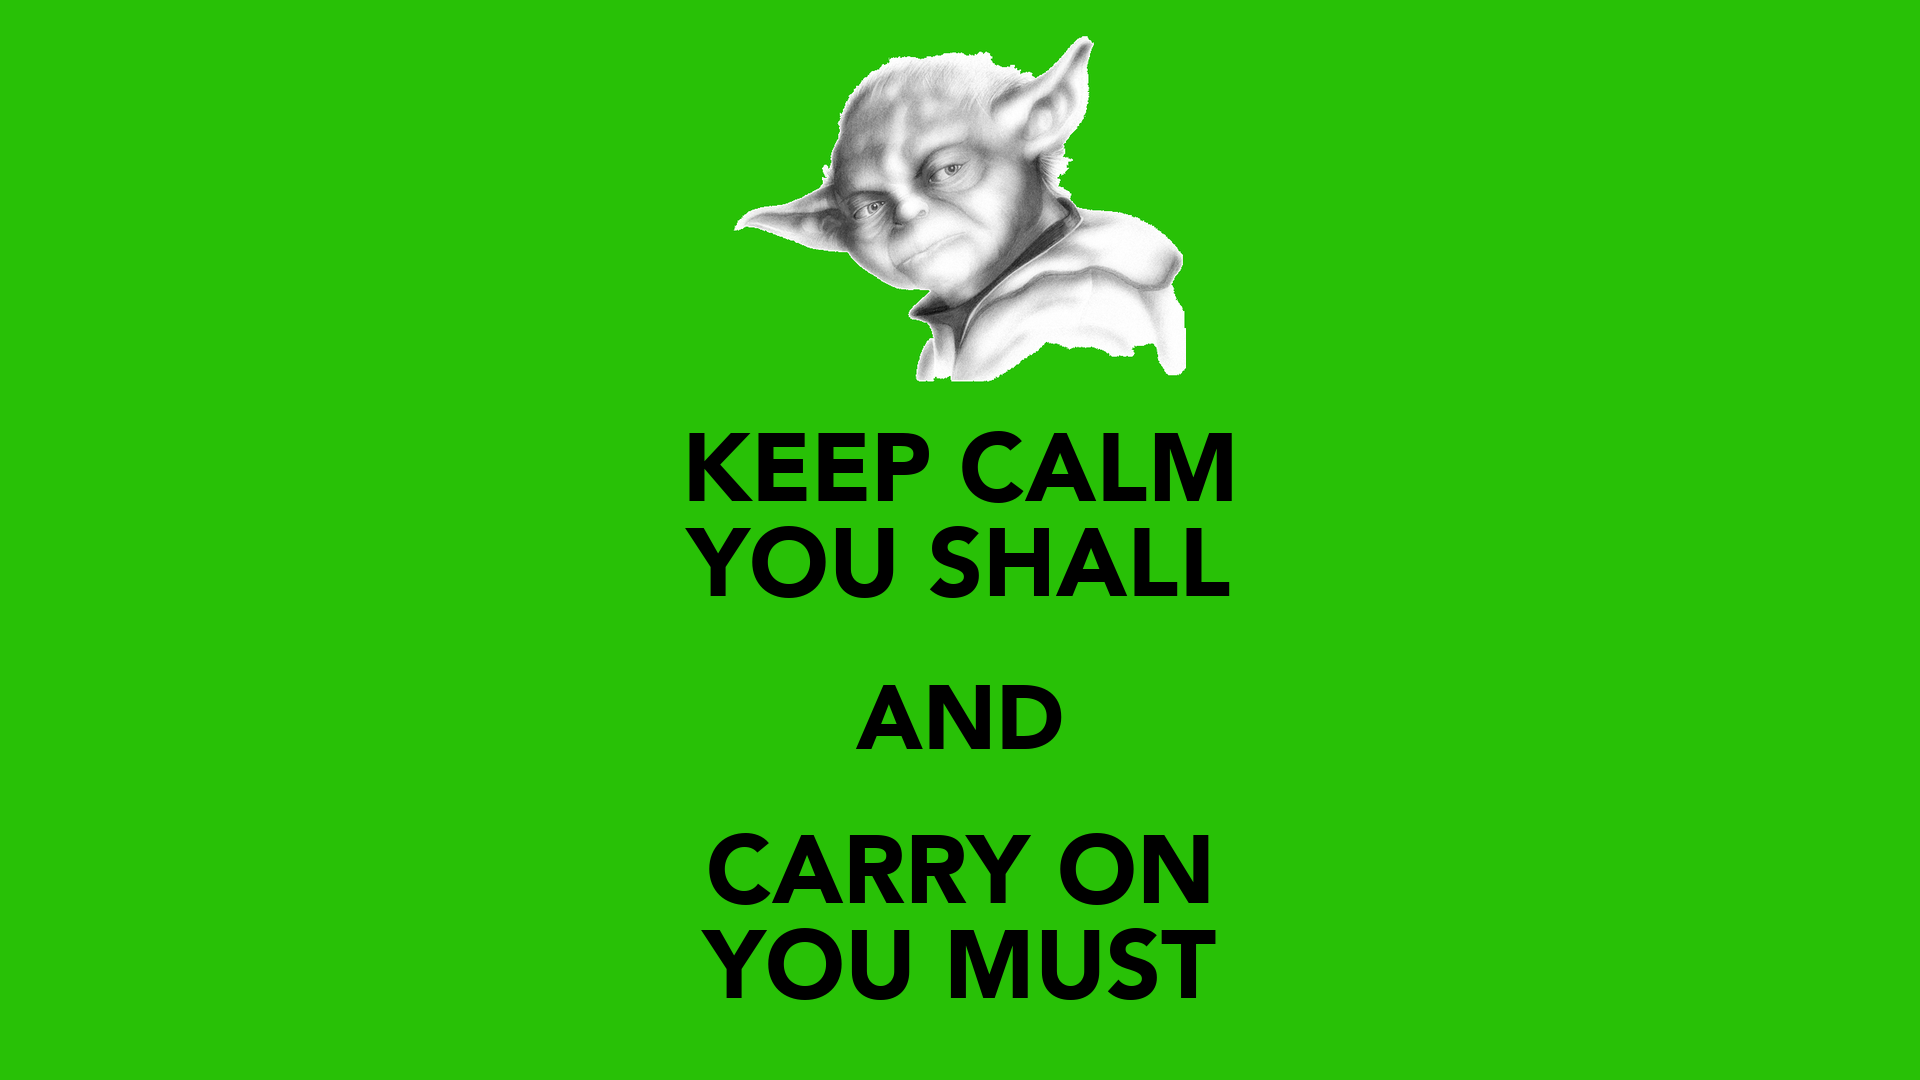 Iphone wallpaper yoda - Get Free High Quality Hd Wallpapers Iphone Wallpaper Yoda